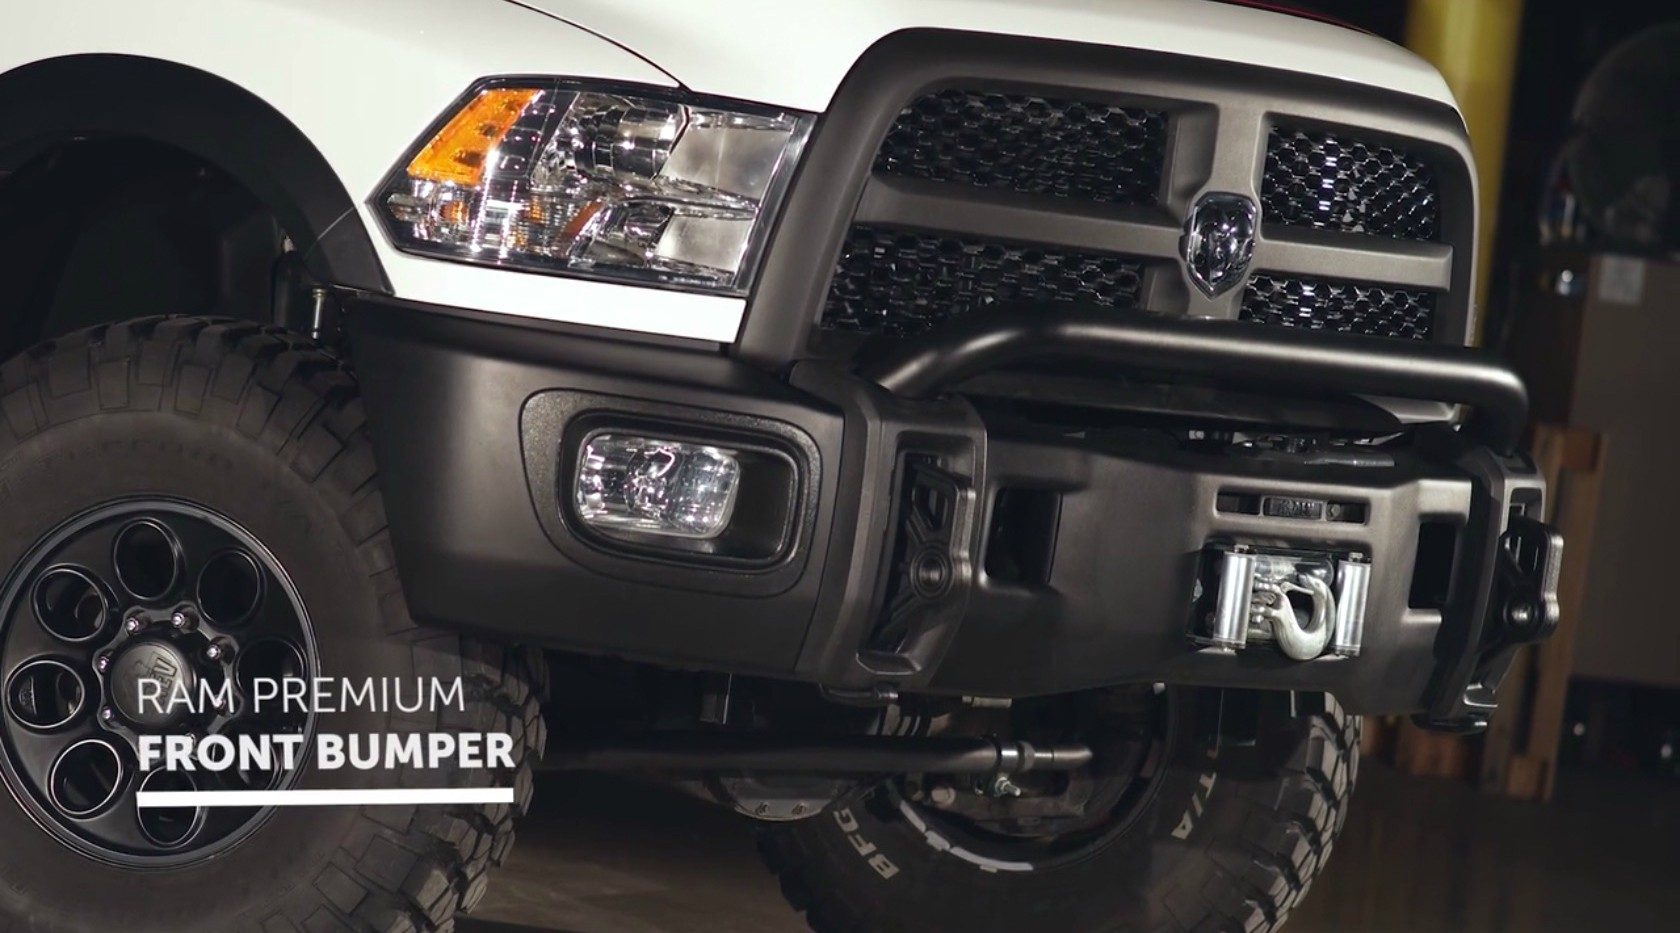 Aev Ram Pickup Truck Is The Ultimate Full Size Overland Vehicle Video Photo Gallery on 2016 Dodge Ram 2500